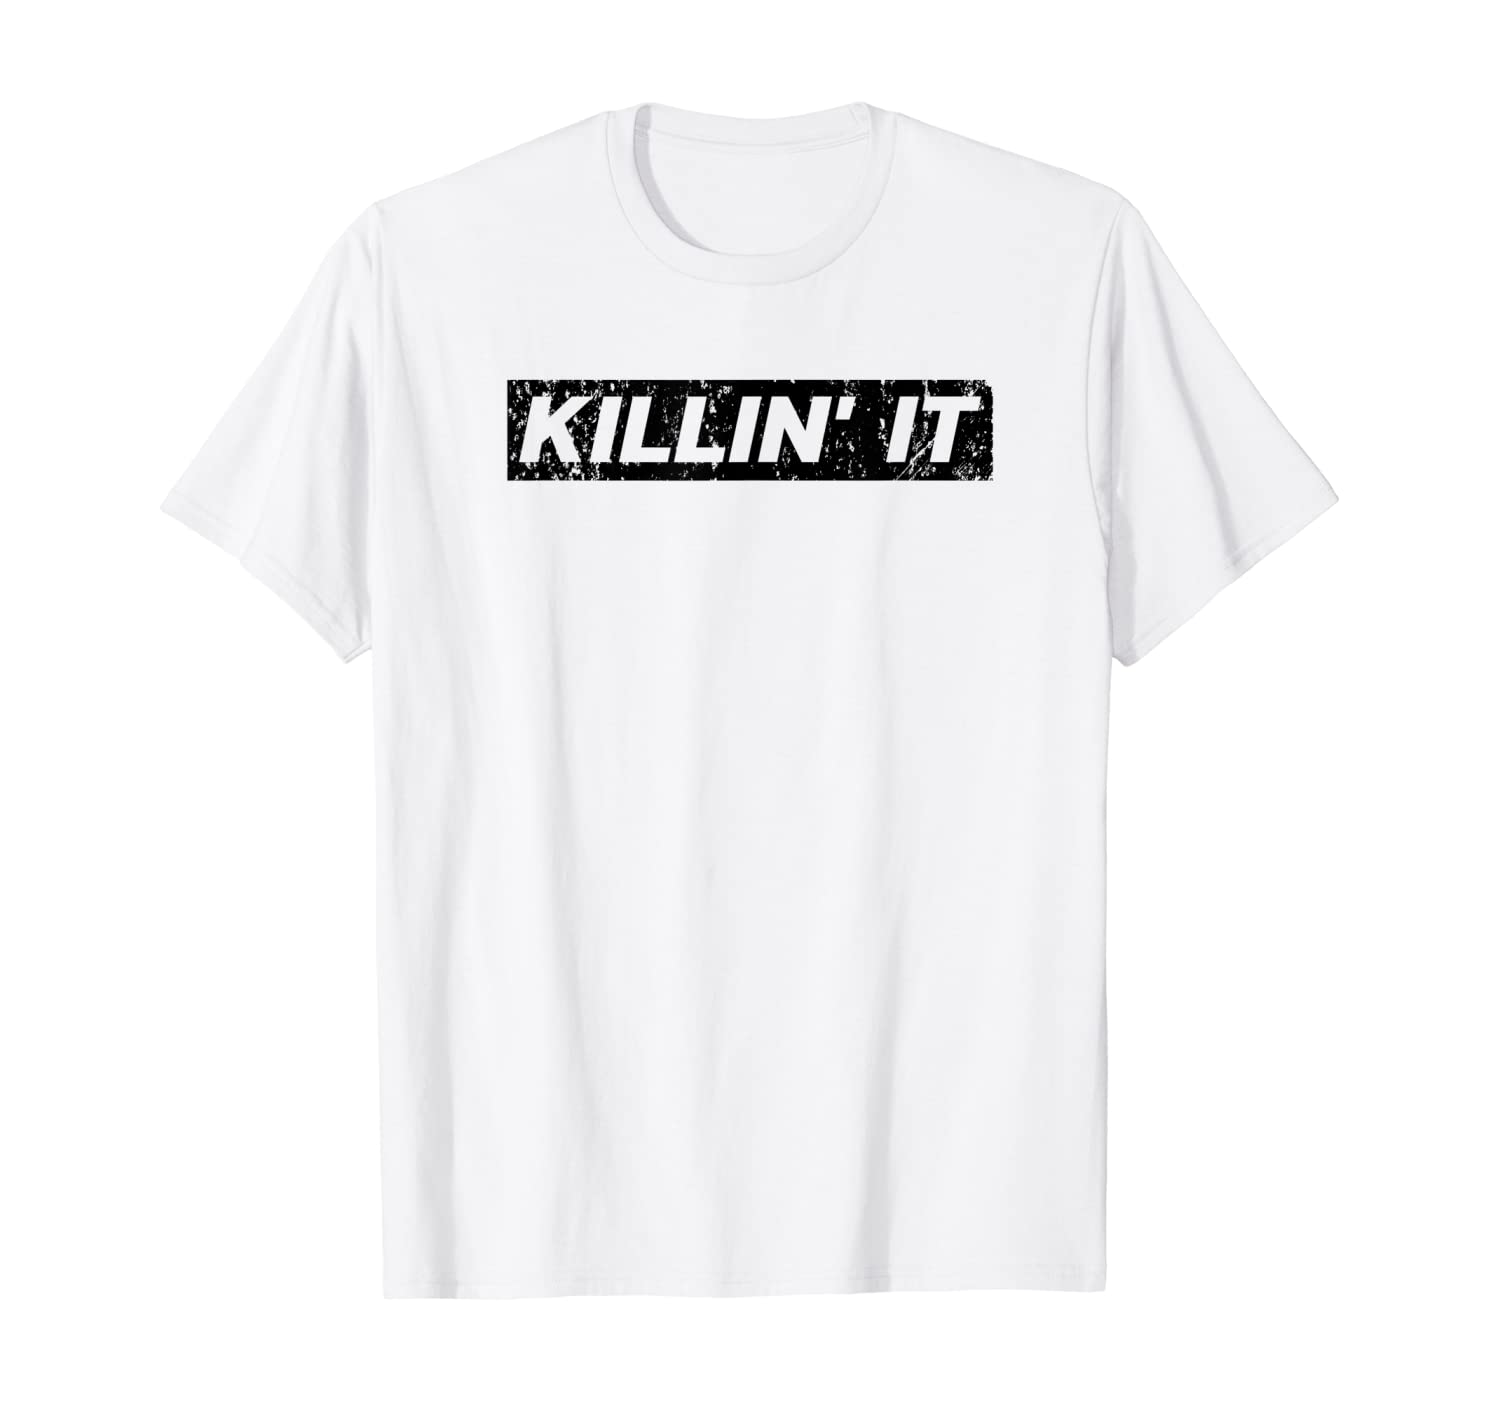 Killin It Killing it | Motivational Inspirational Gym T-Shirt